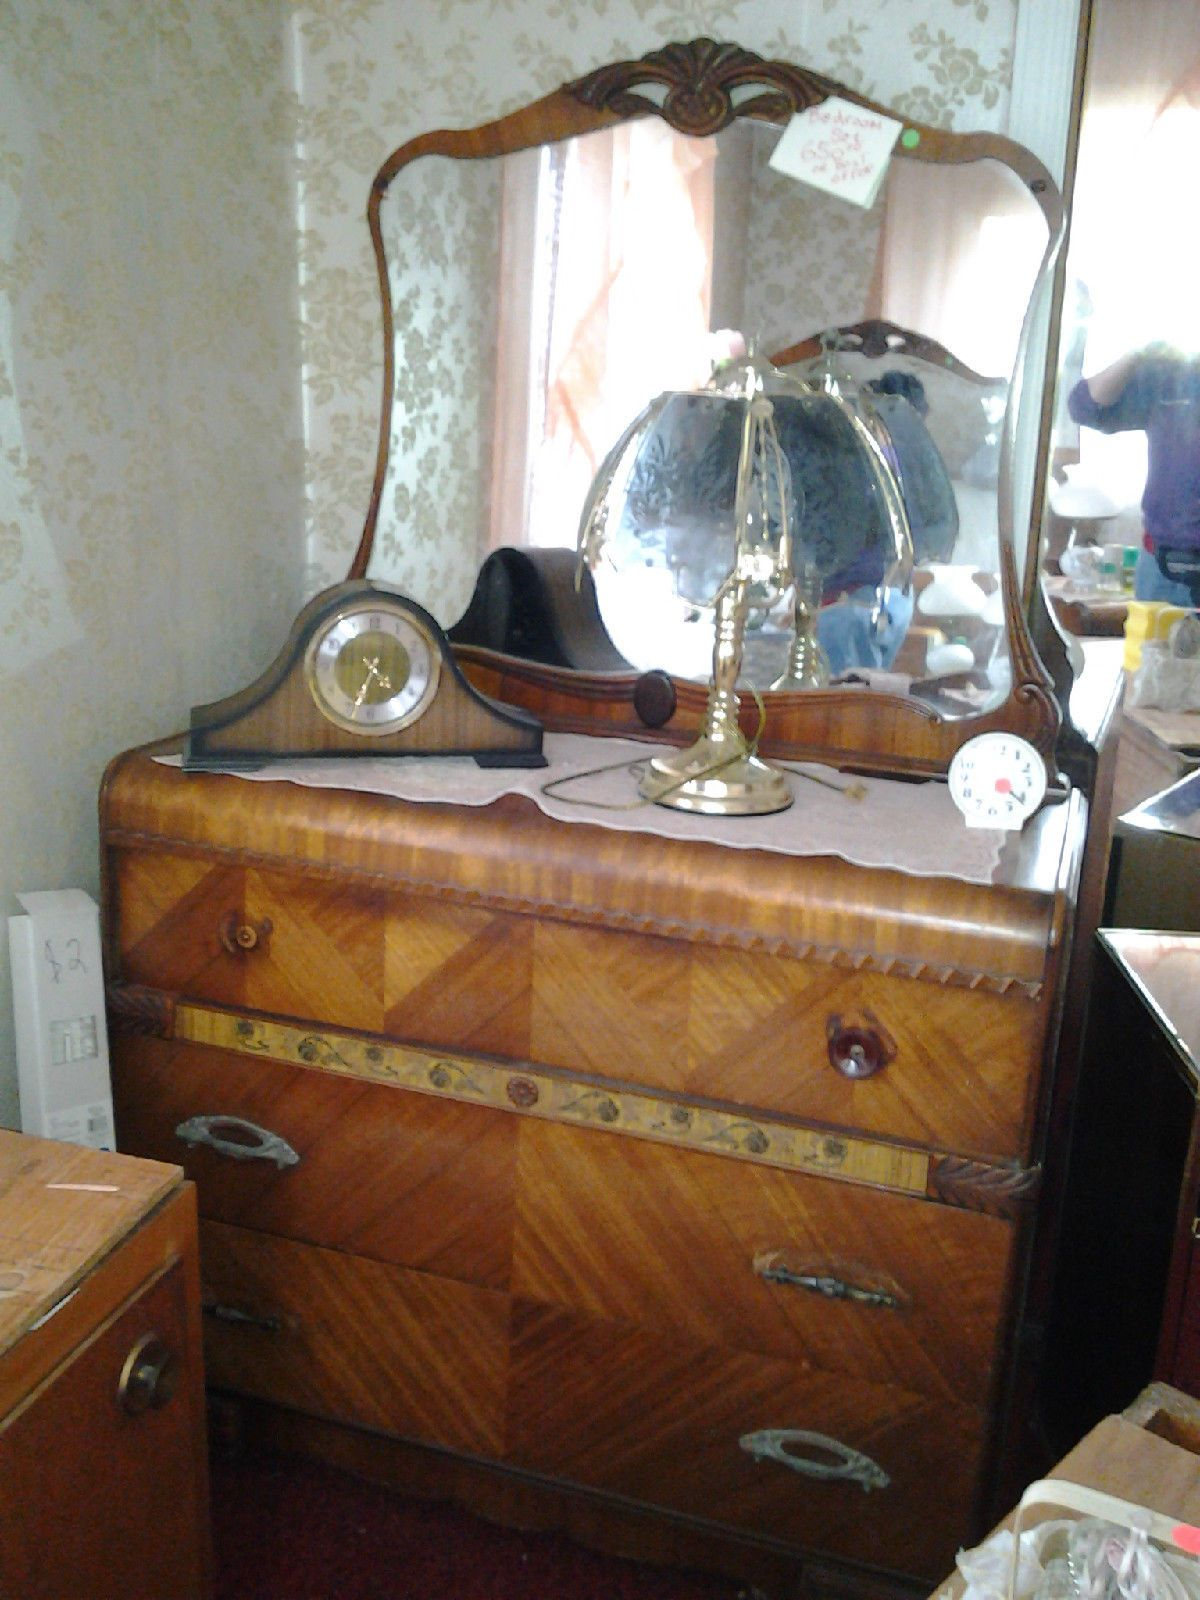 1930s bedroom furniture products for sale | eBay